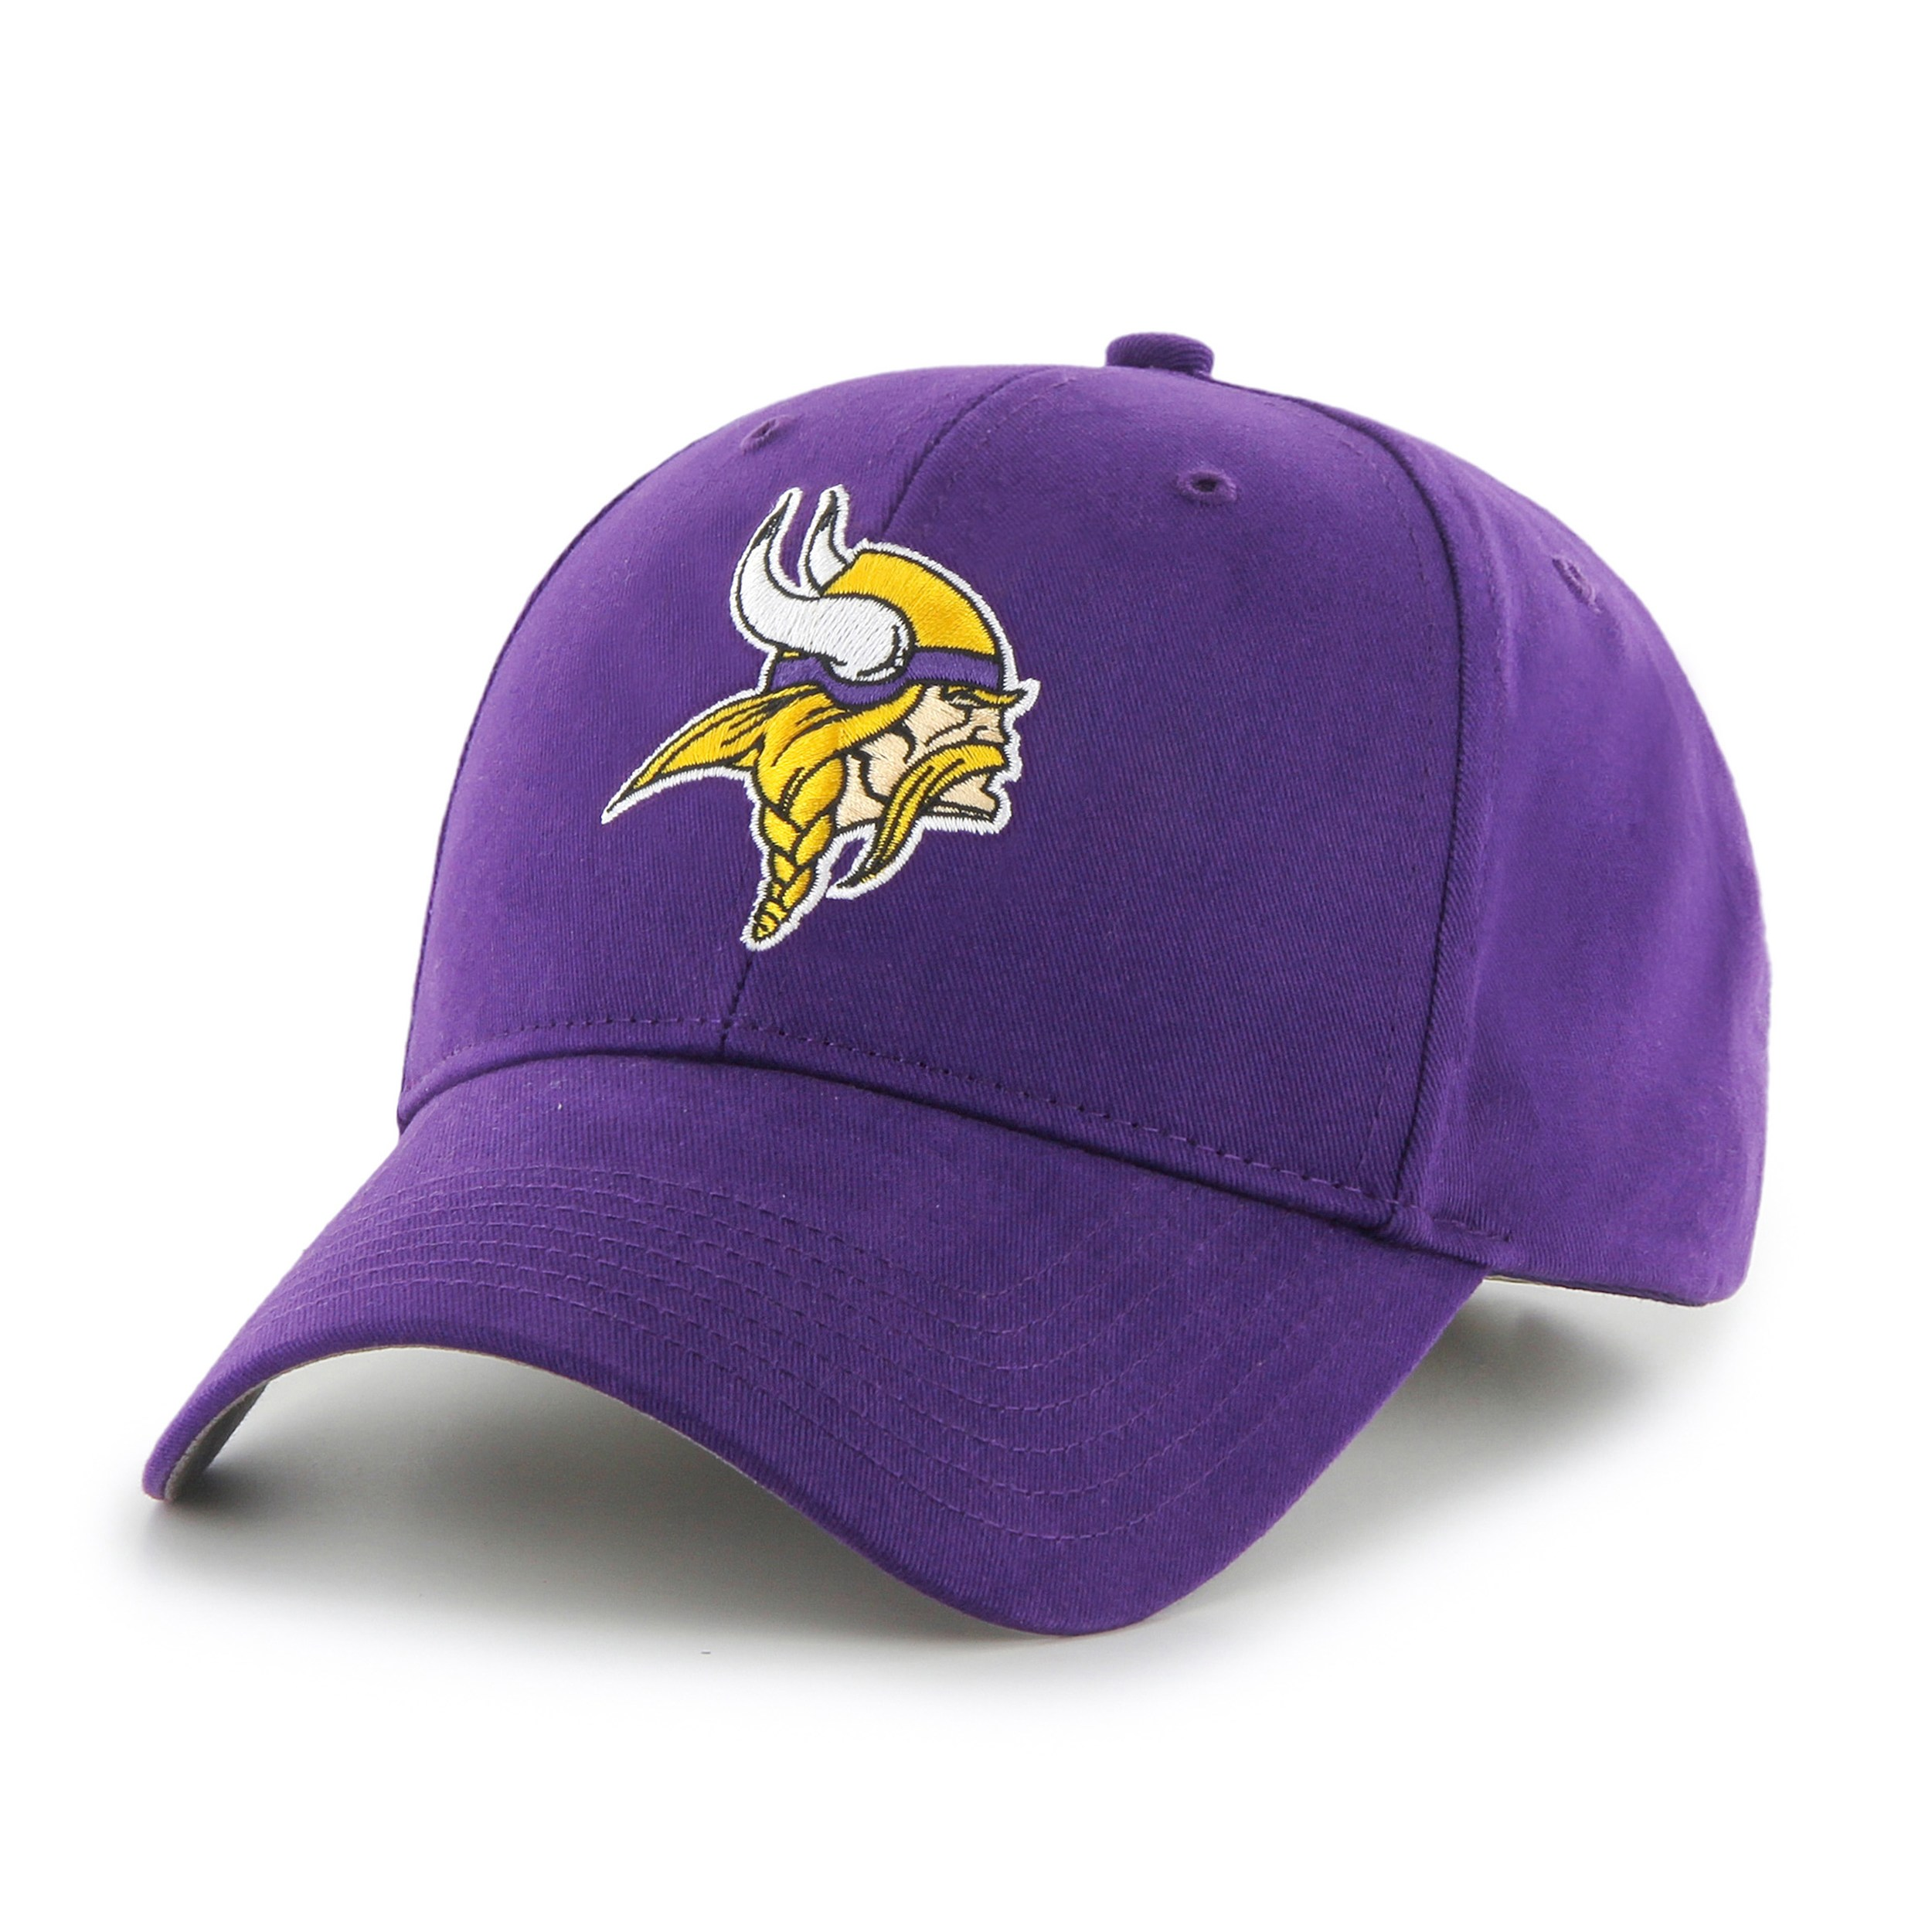 a4e6a6f11 ... reduced 47 brand minnesota vikings nfl basic hook and loop hat 79543  ee077